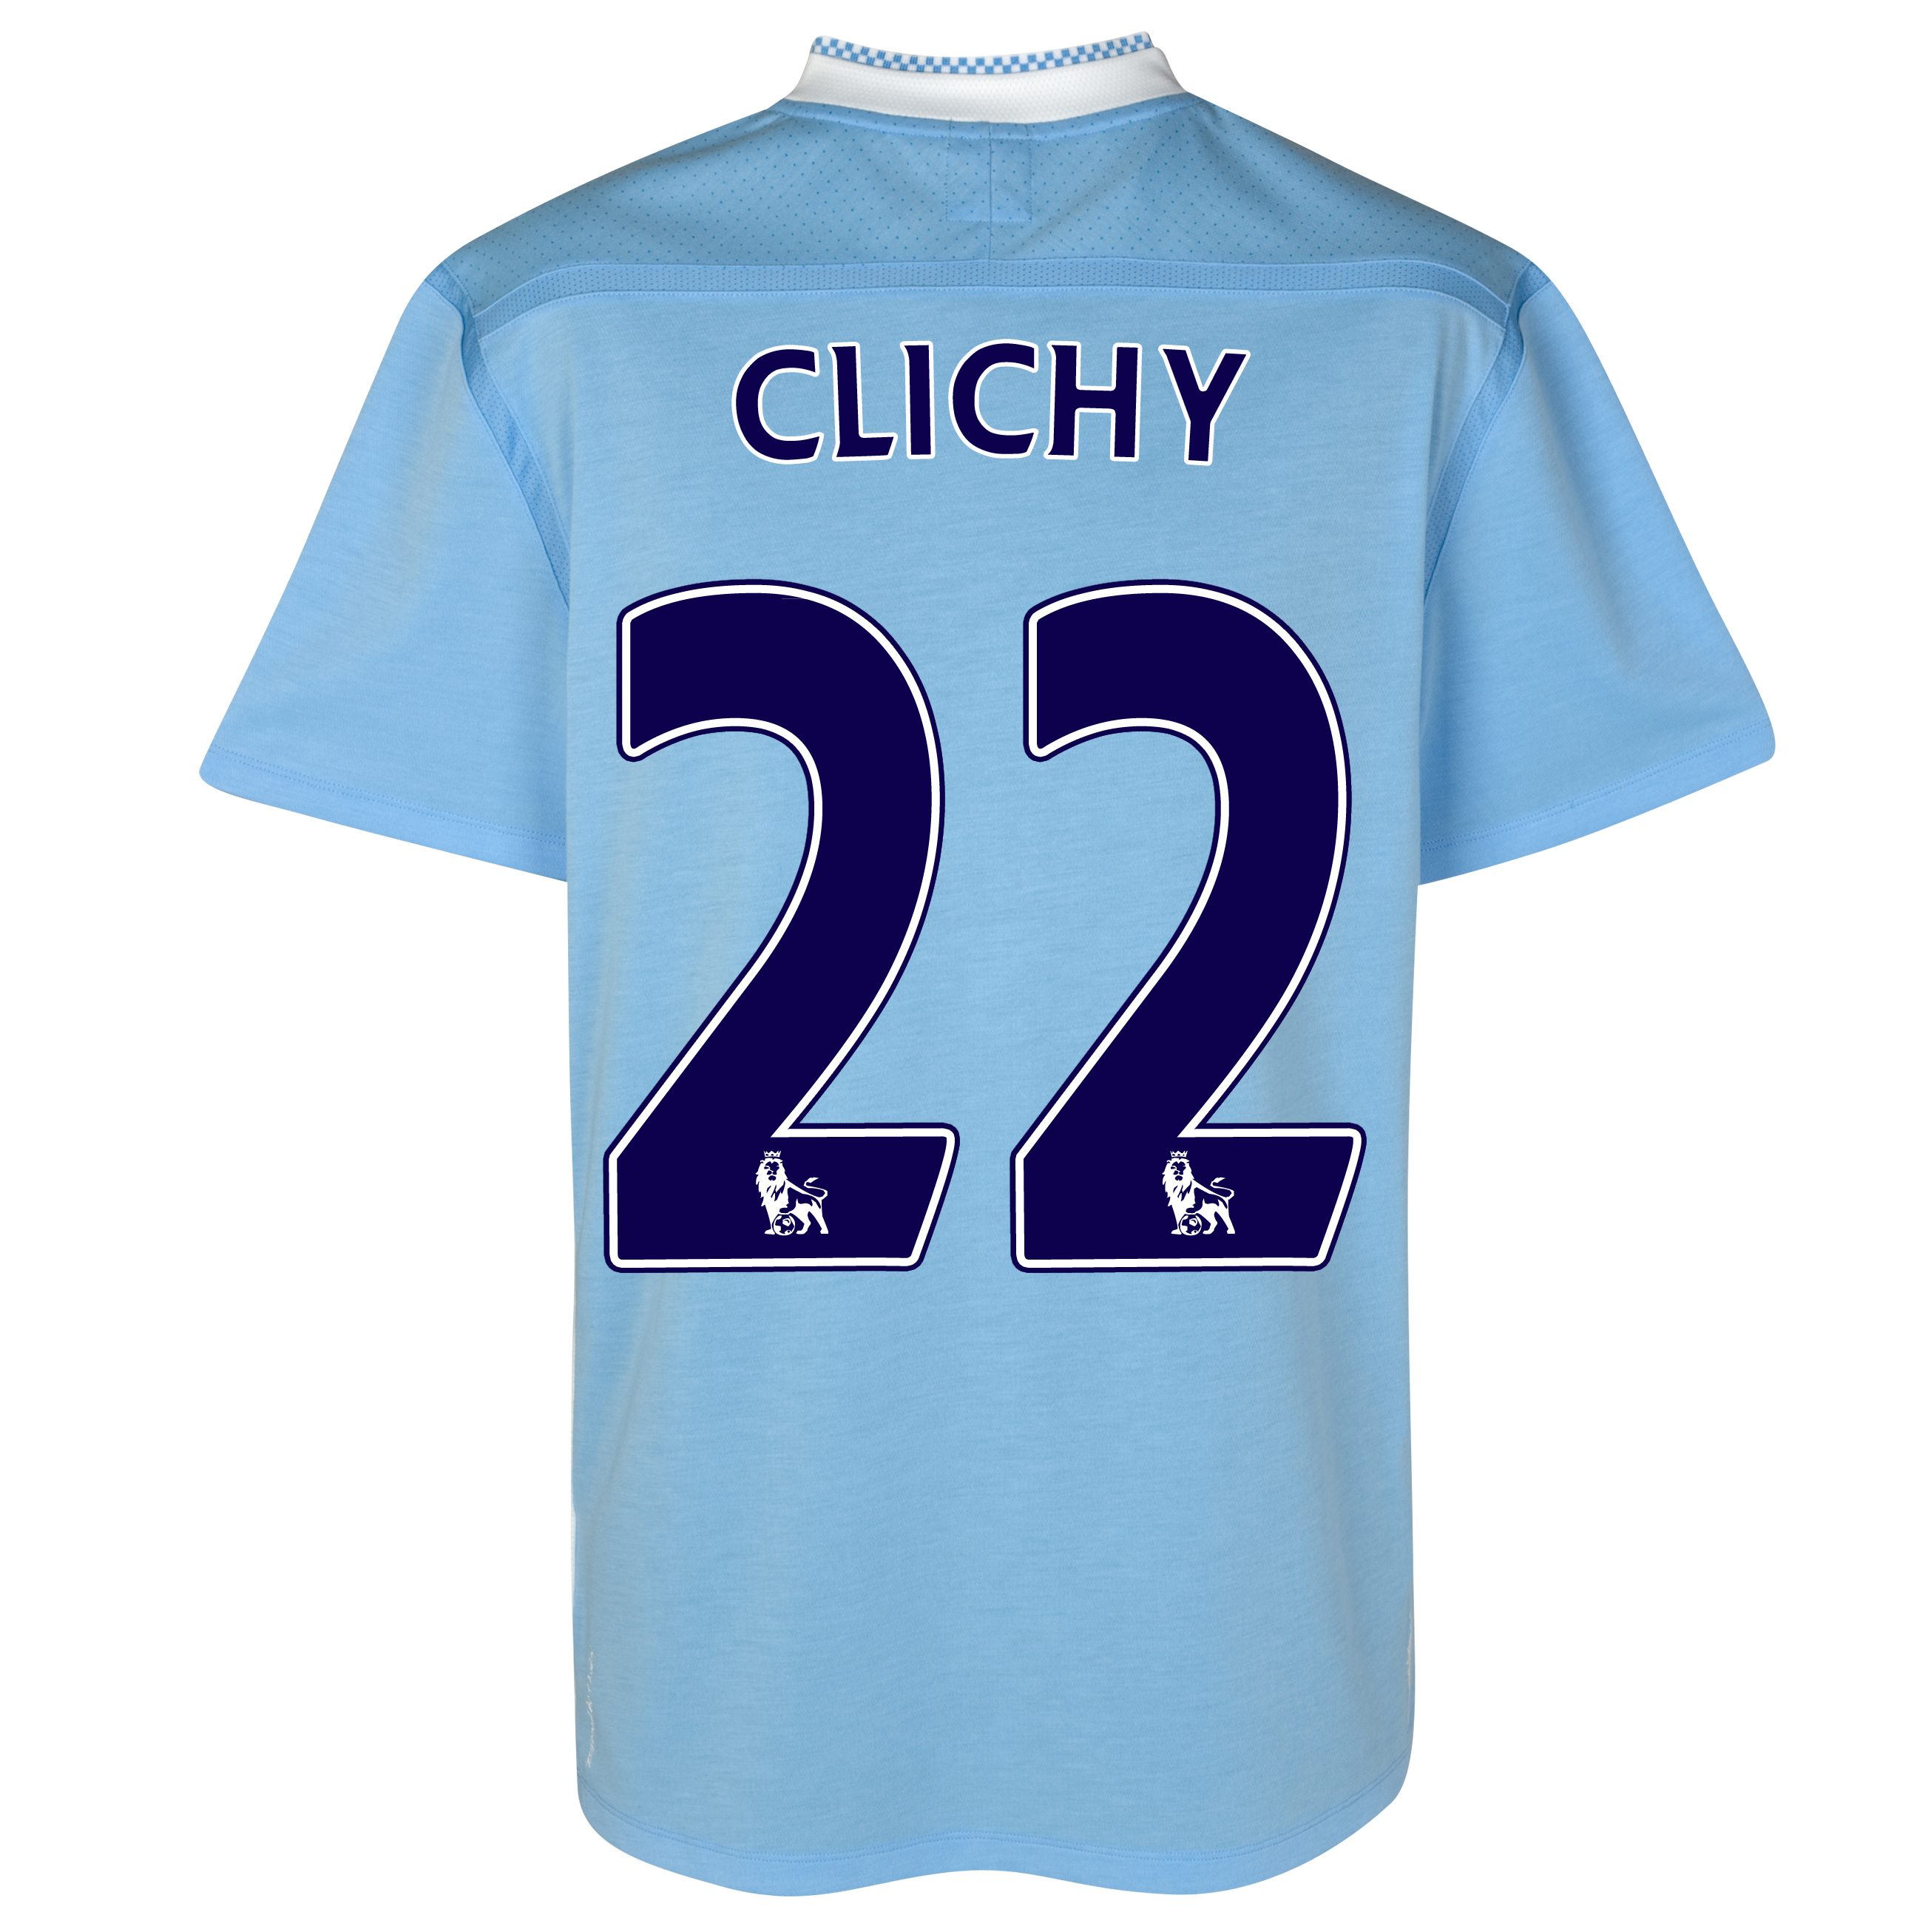 Manchester City Home Shirt 2011/12 with Clichy 22 printing